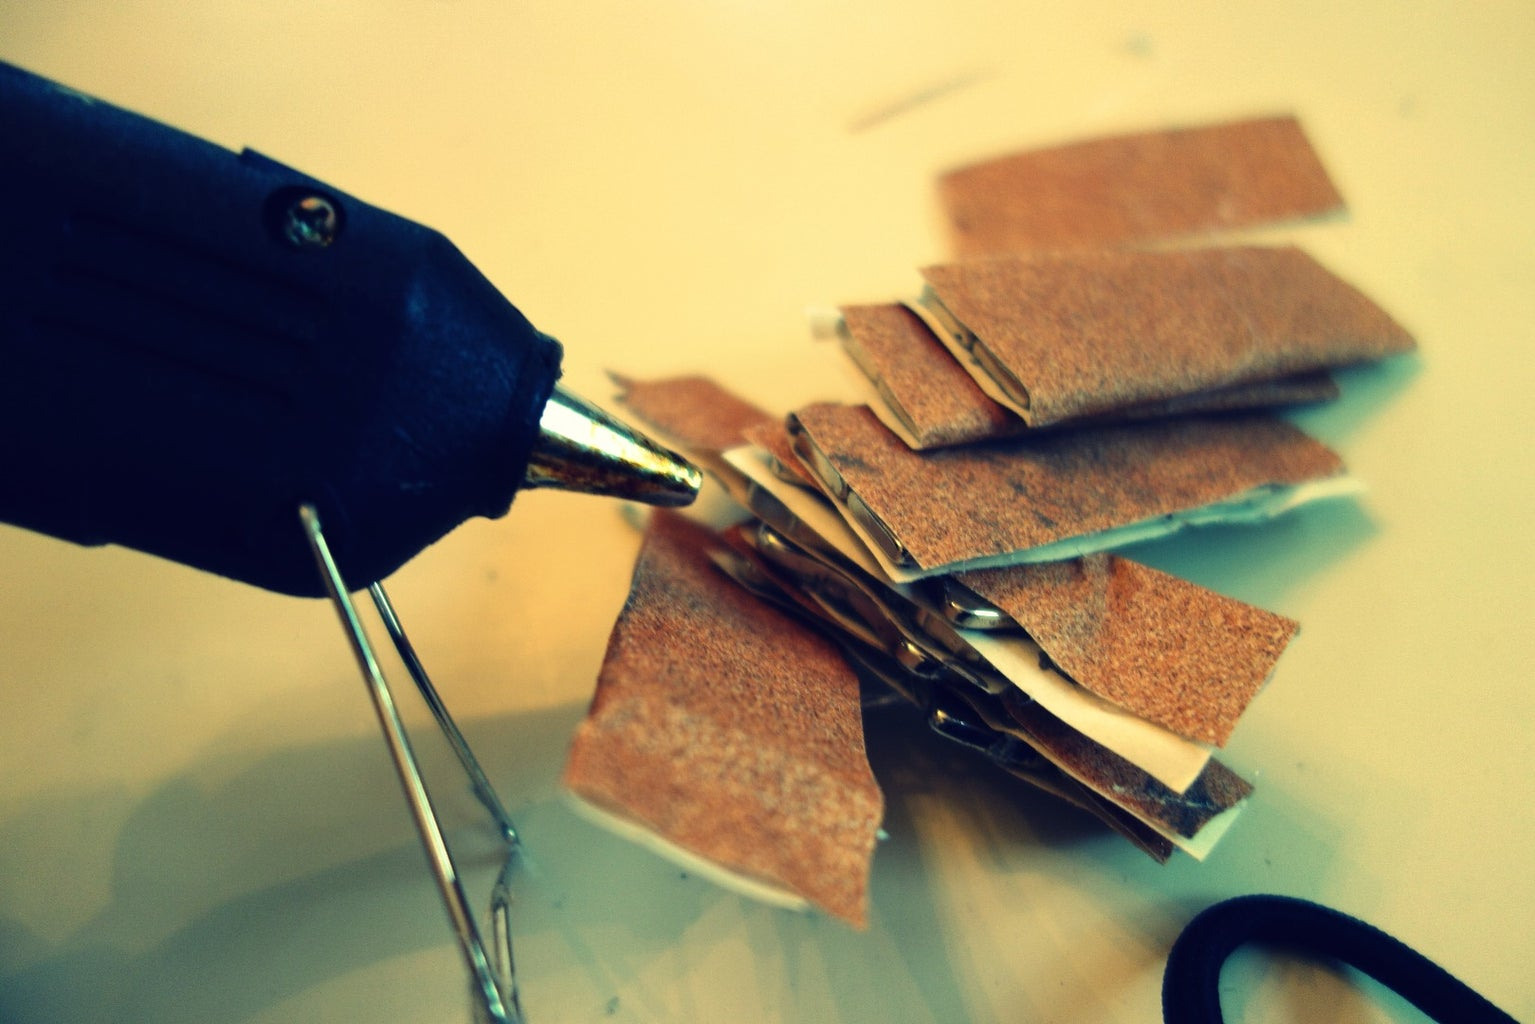 Wrap Magnets in Sandpaper and Install